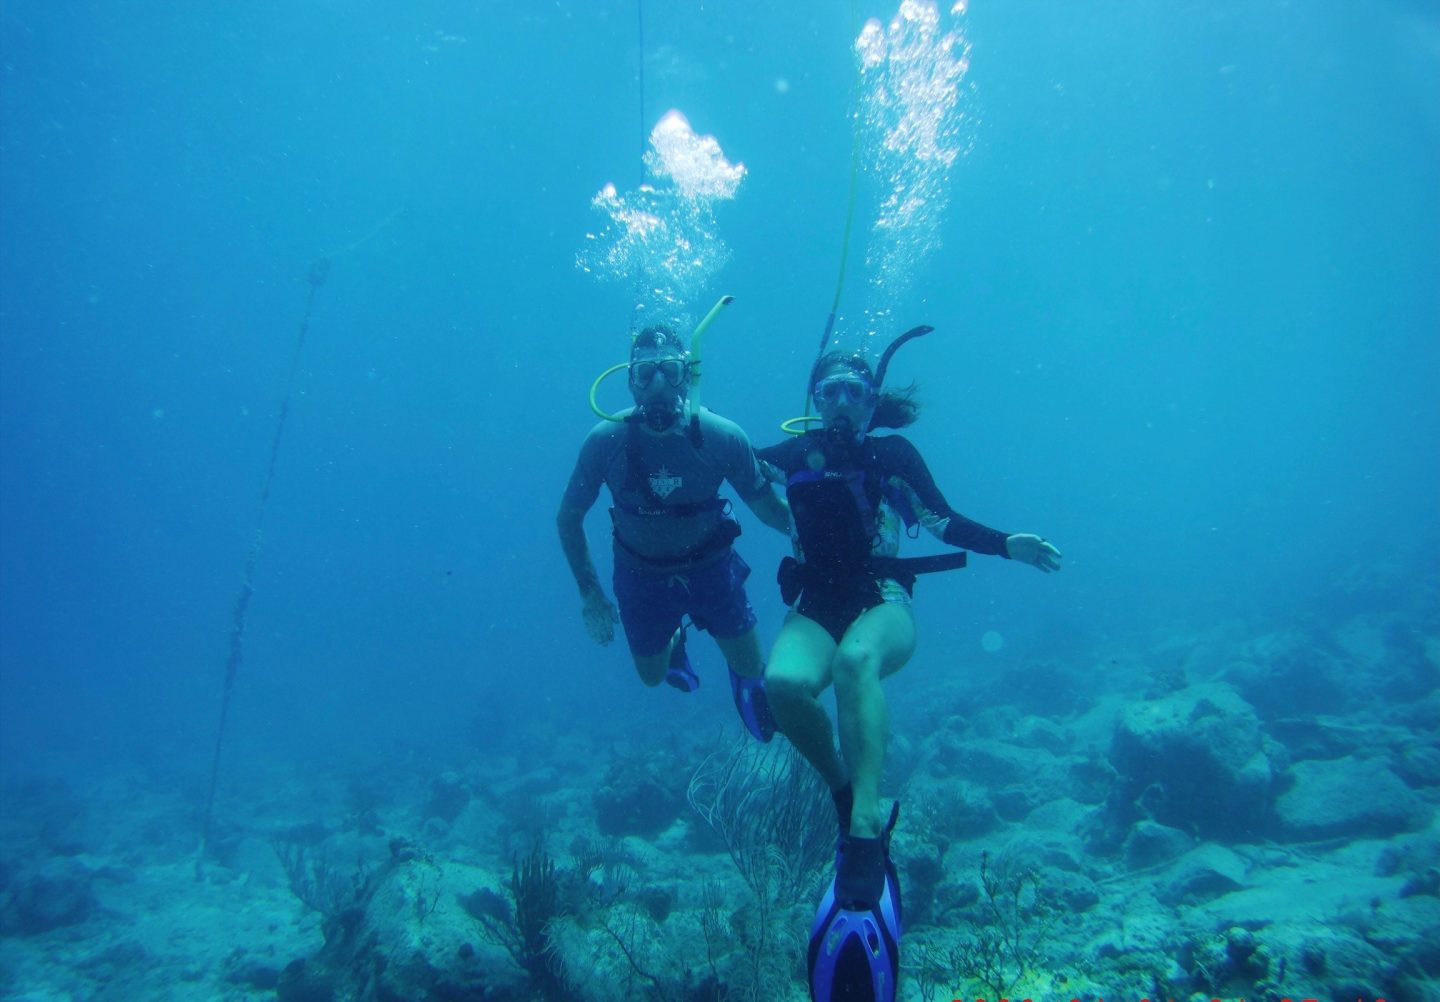 Underwater exploration with The Barefoot Angel and BVI Snuba - see more of the British Virgin Islands